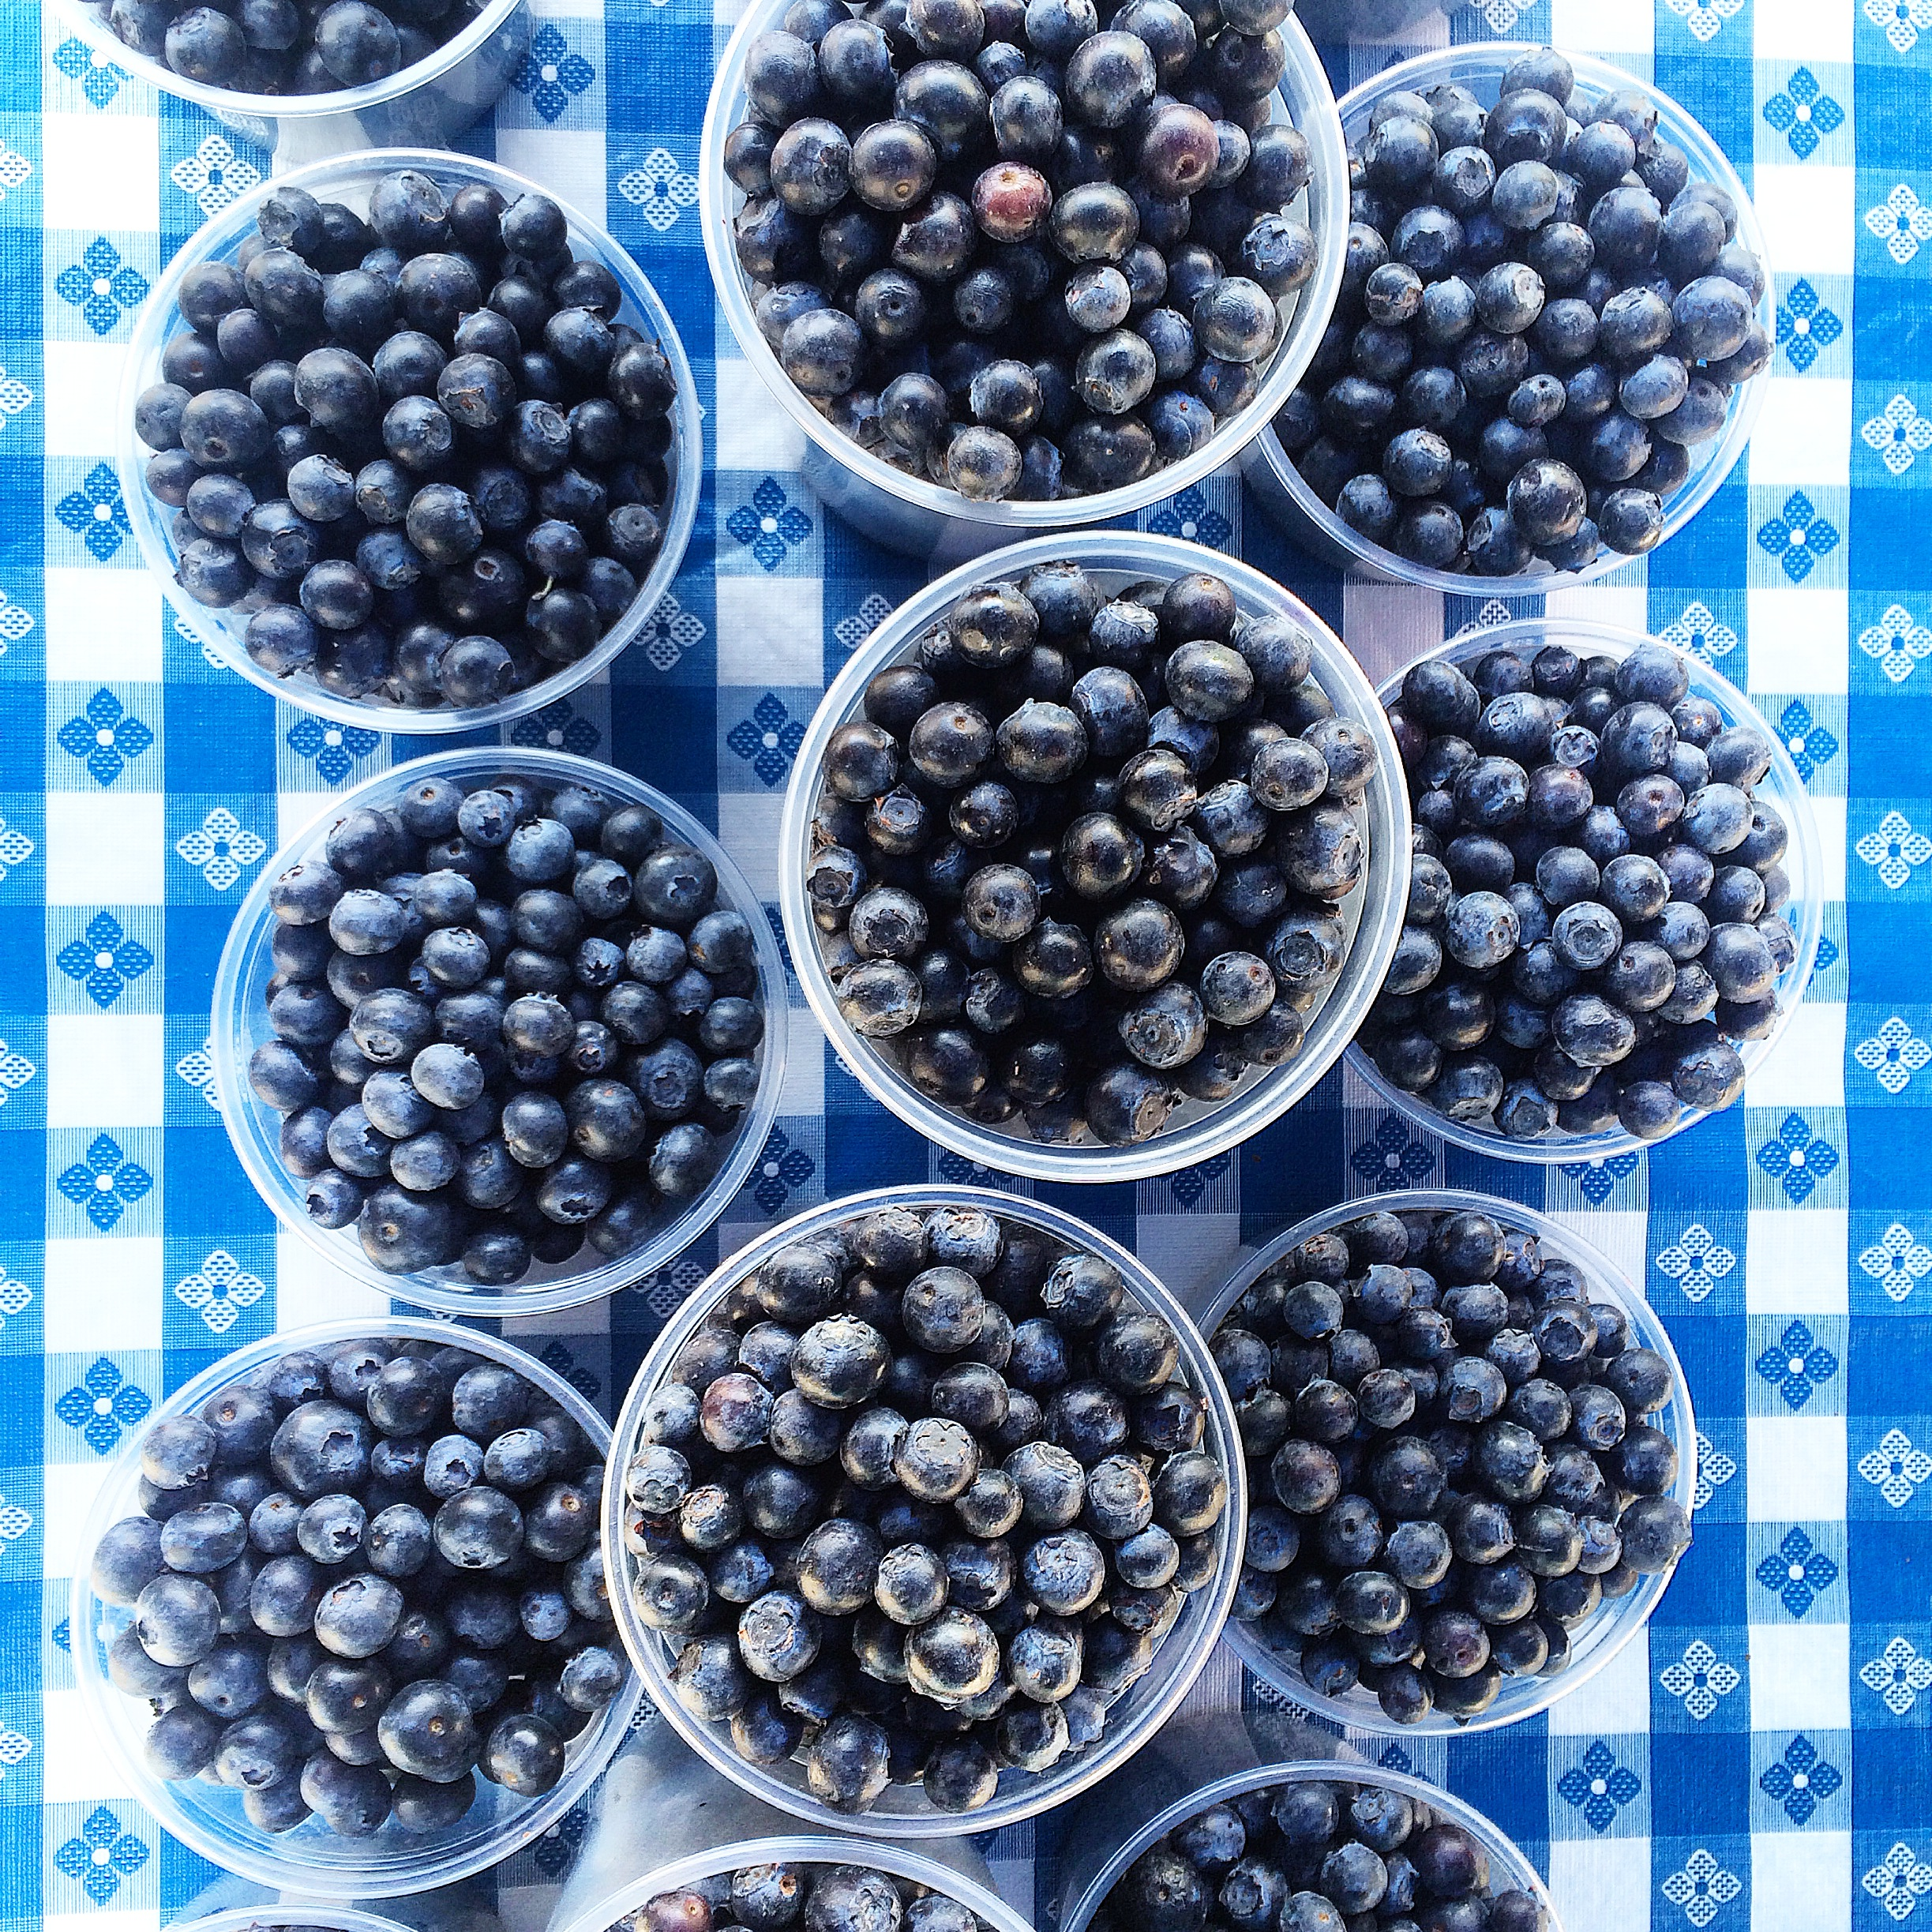 First blues of the Season at the Berkeley Farmers Market. These from Triple Delight never fail to ... delight! :)